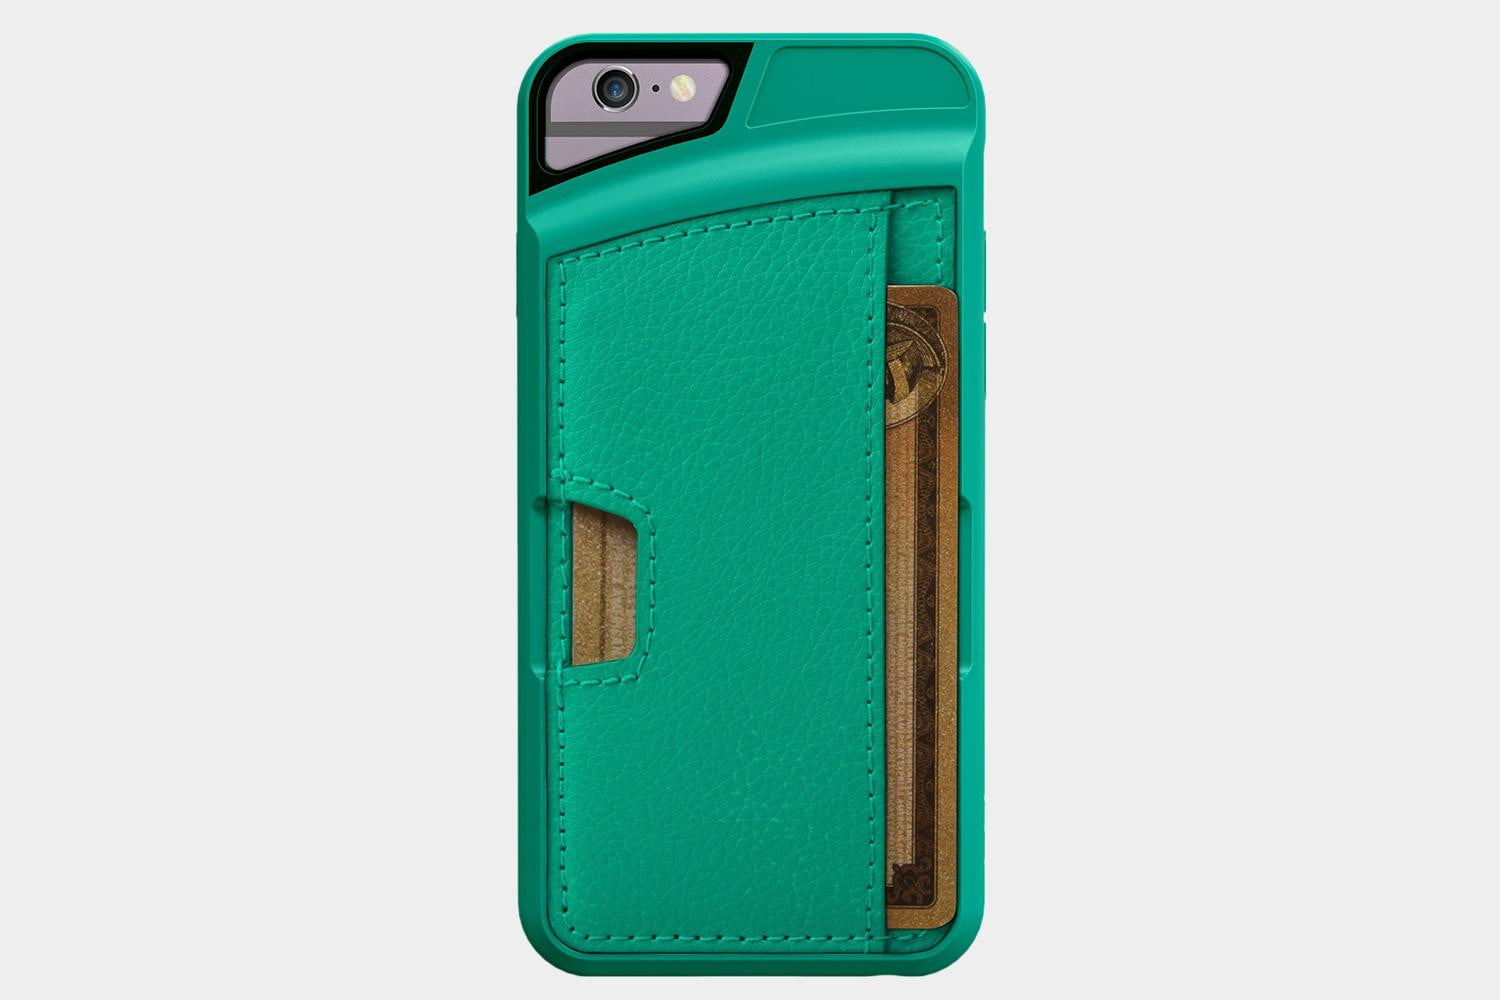 iphone 6 with case the 40 best iphone 6 cases and covers digital trends 15125